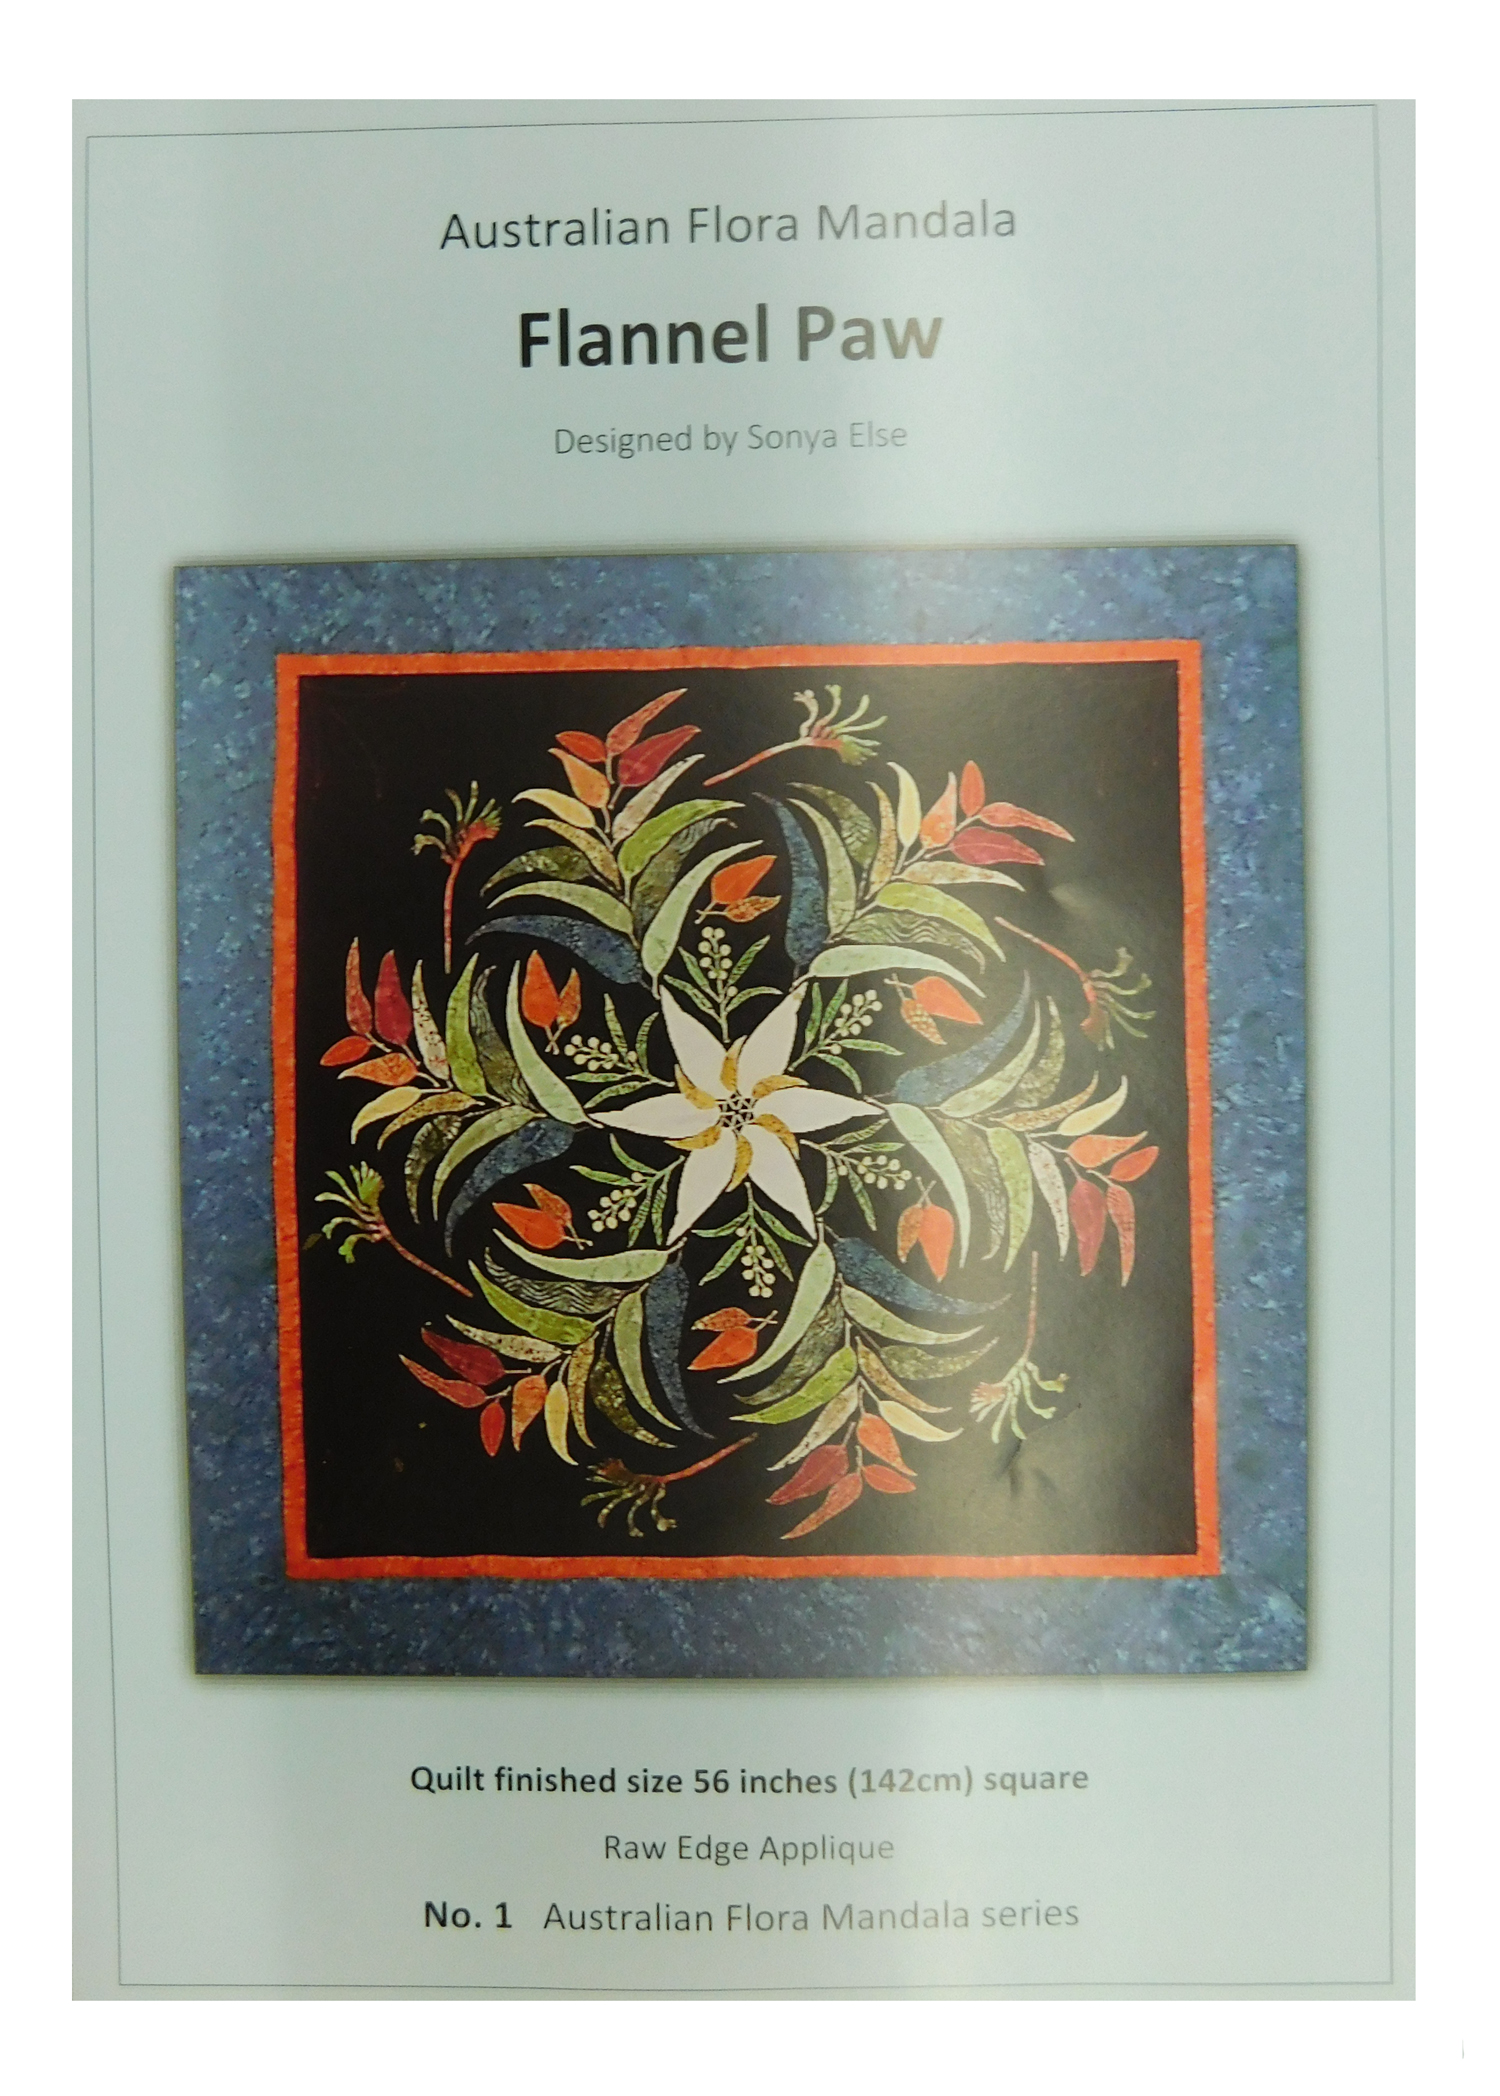 Quilting Sewing Australian Flora Mandala Quilt Pattern FLANNEL PAW New